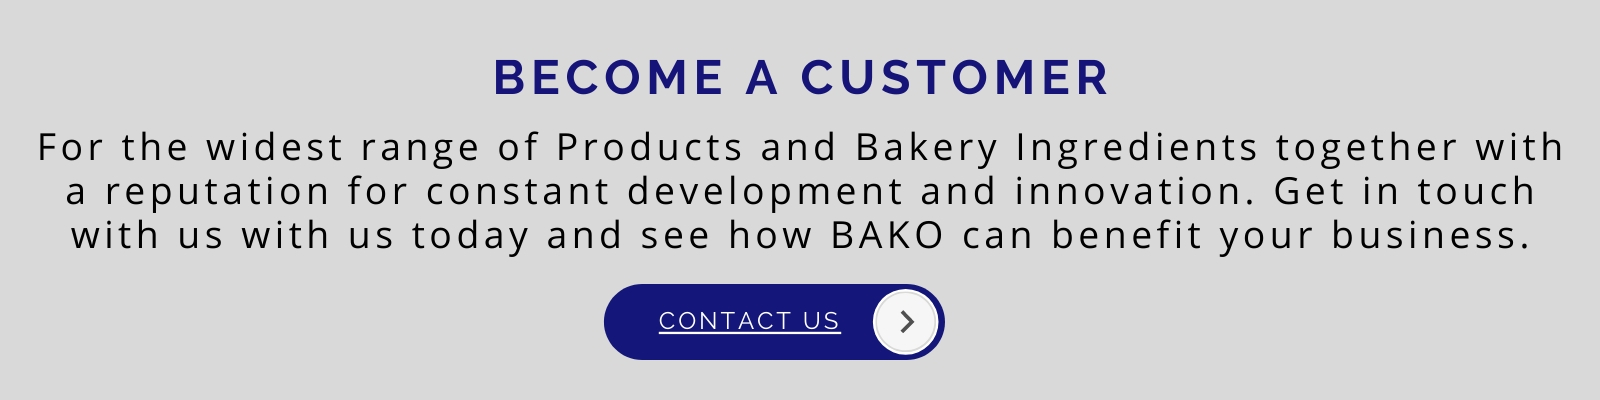 Become a Bako customer